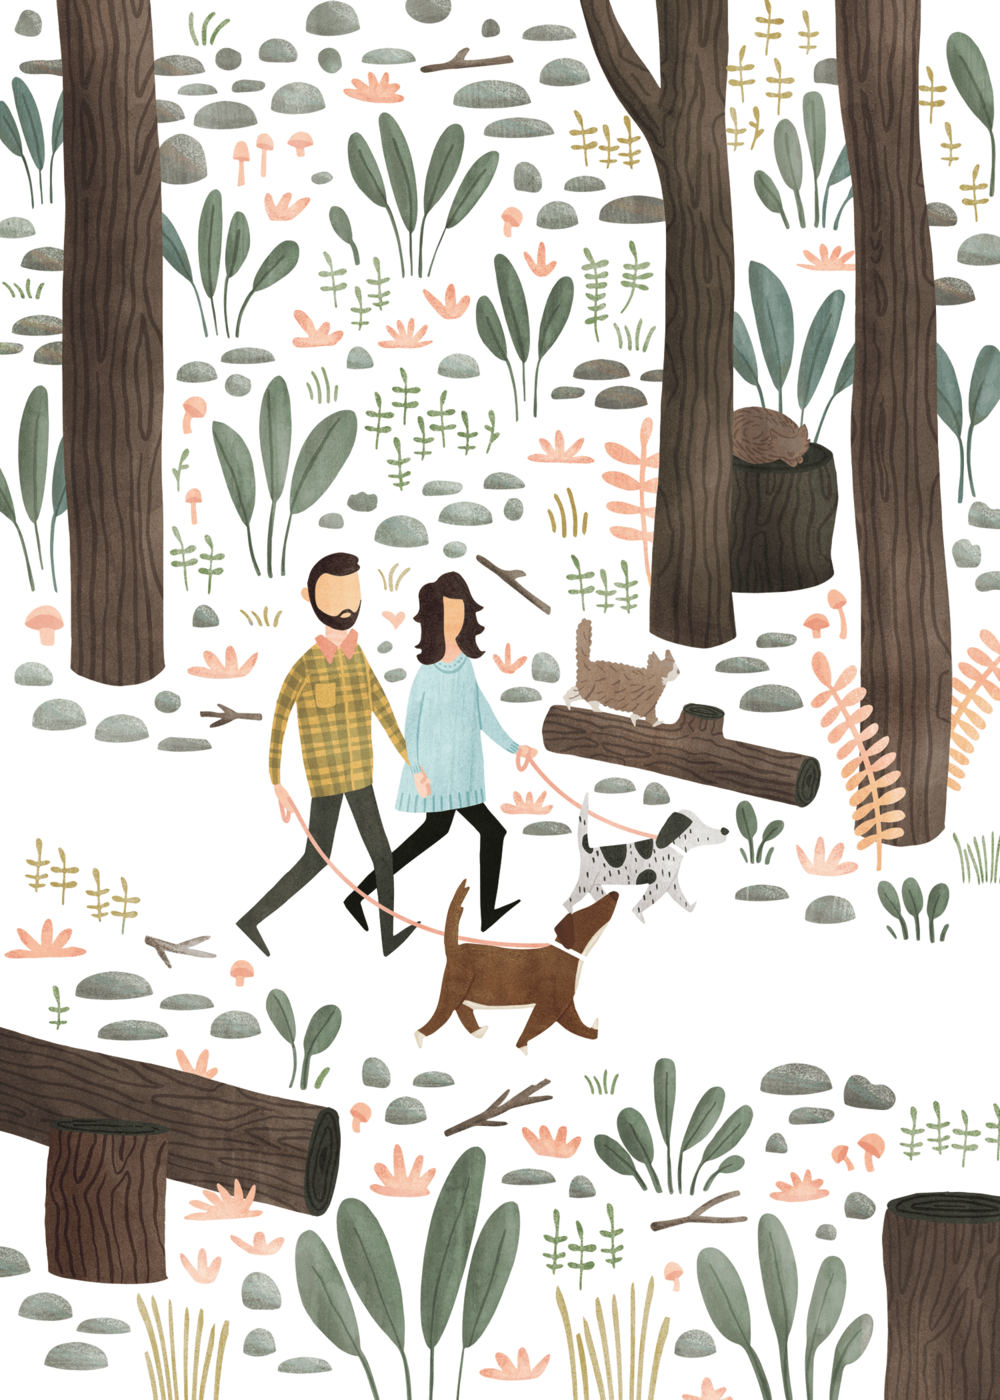 natalie-marion-family-portrait-cat-dogs-forest-happy-illustration.png